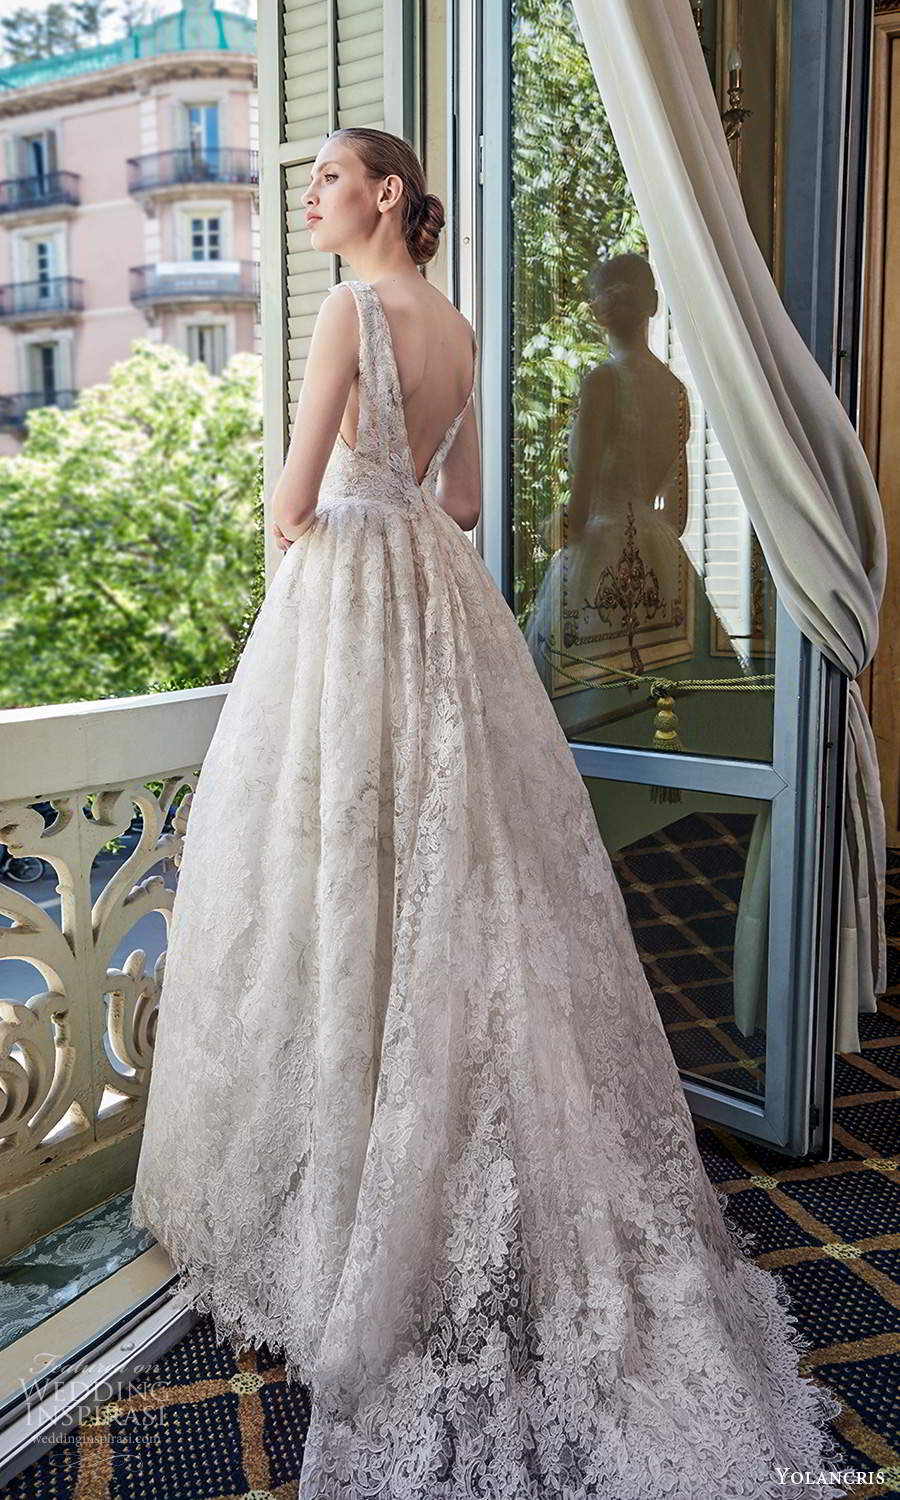 yolancris 2020 bridal couture sleeveless straps plunging v neckline fully embellished a line ball gown wedding dress chapel train (11) bv